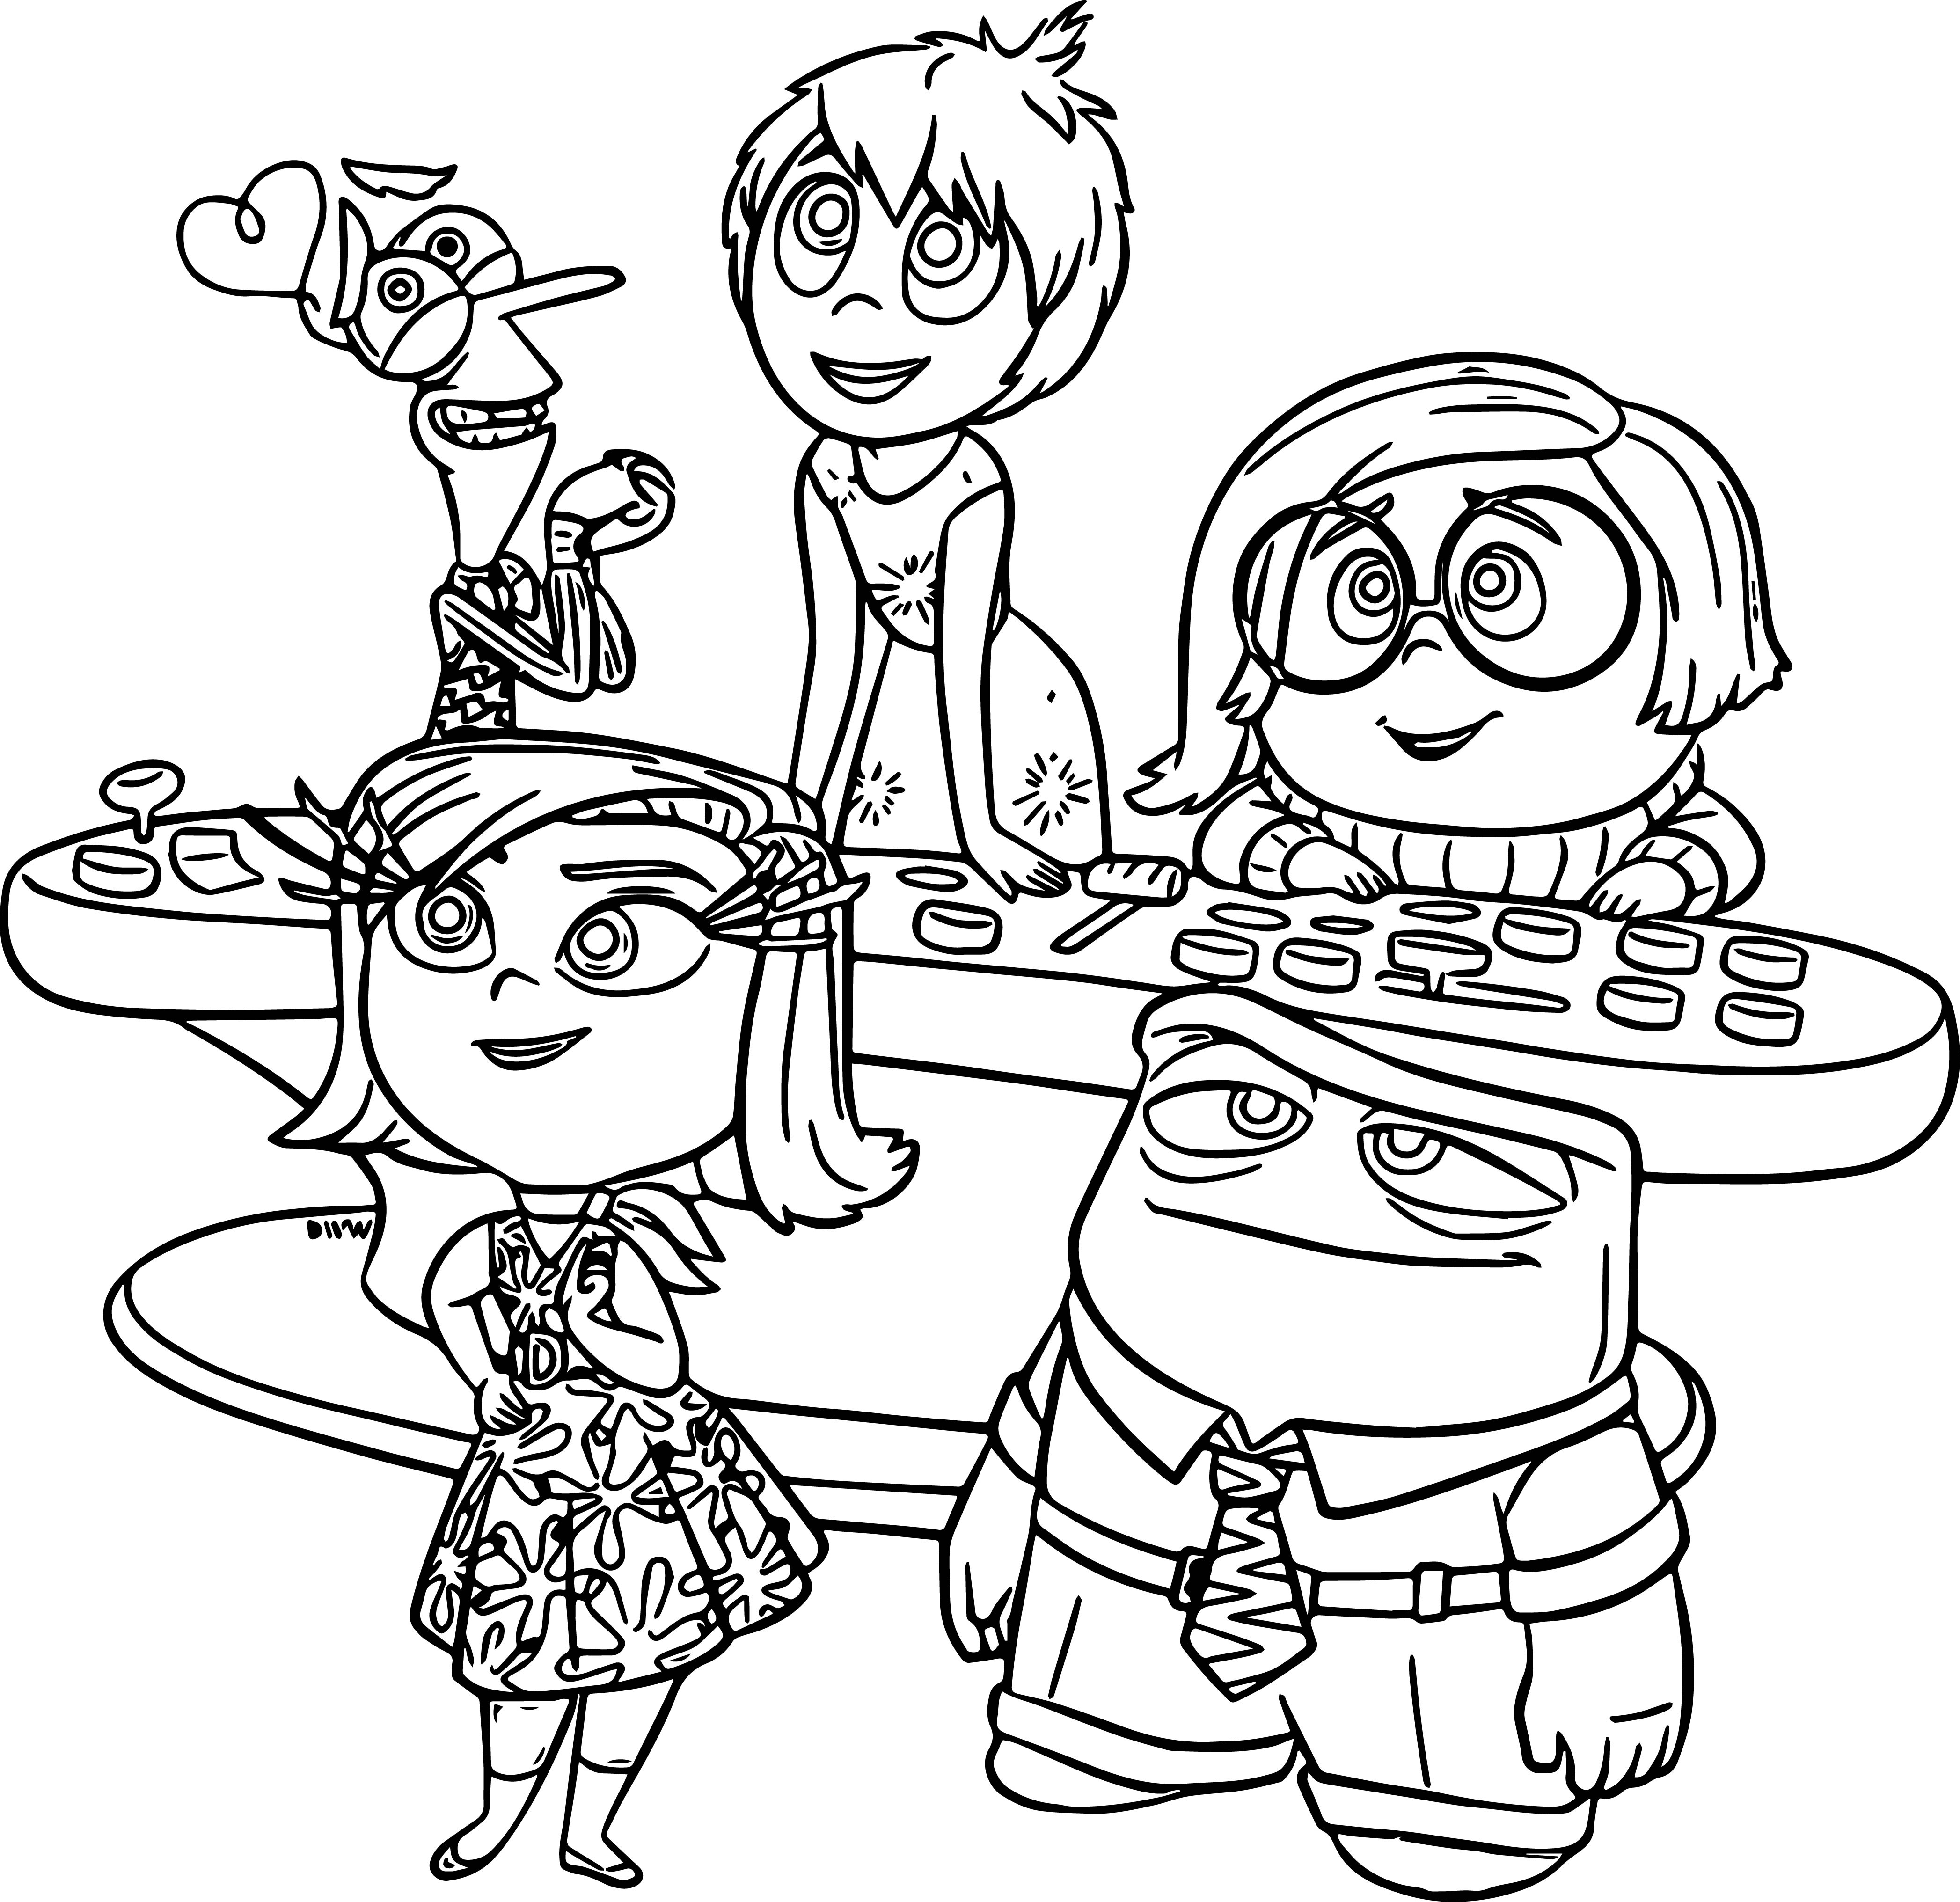 inside out coloring pages all characters inside out drawing at getdrawings free download all characters out inside pages coloring